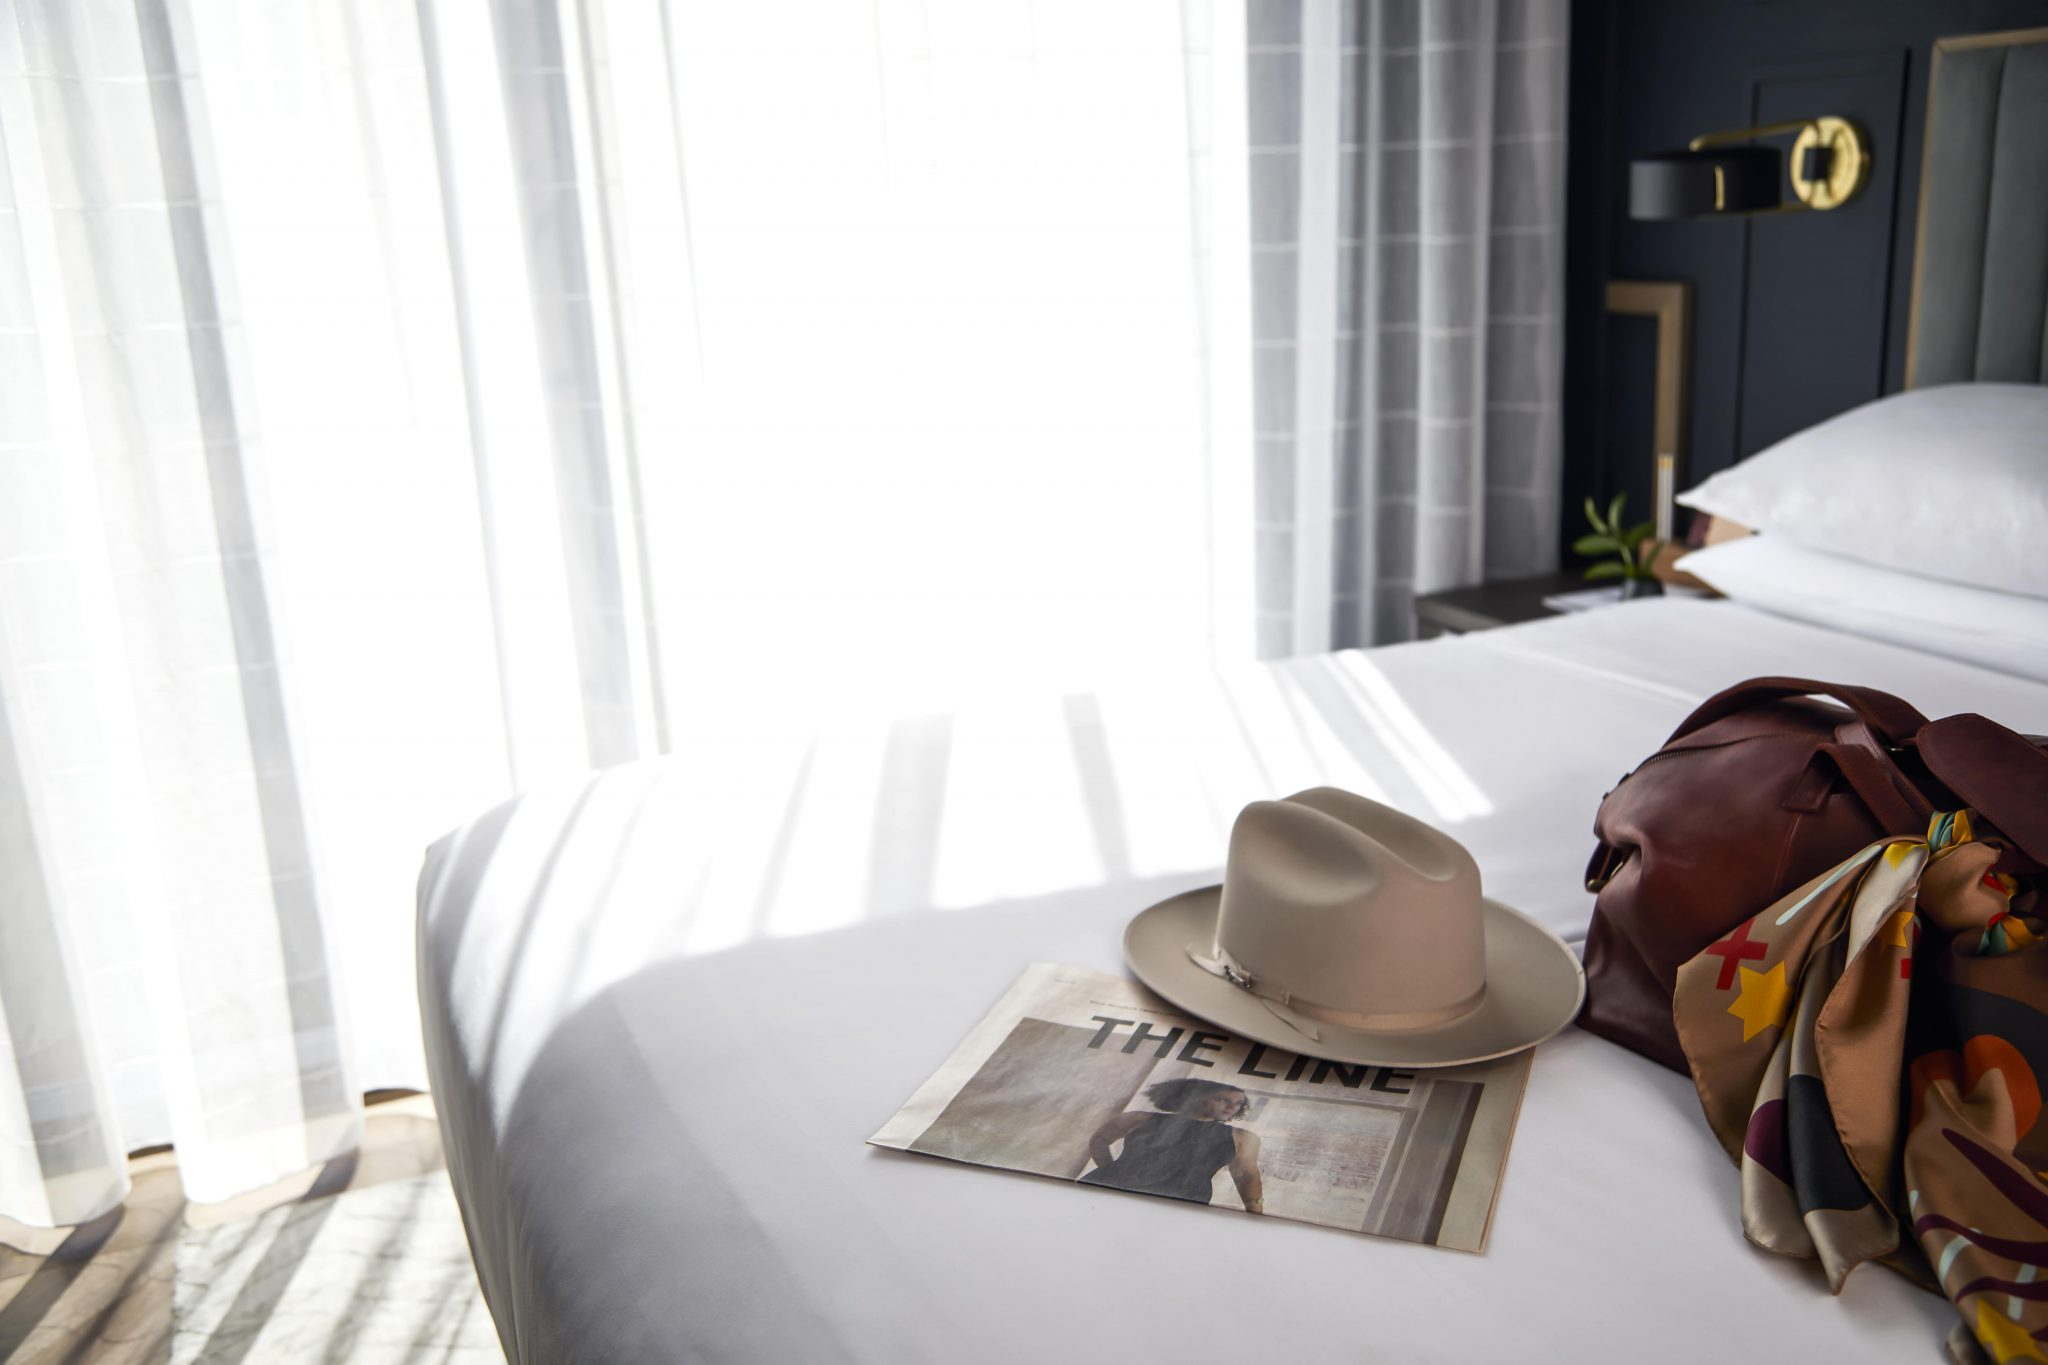 Penthouse Bed with Luggage, Hat & The Line Newspaper on Bed